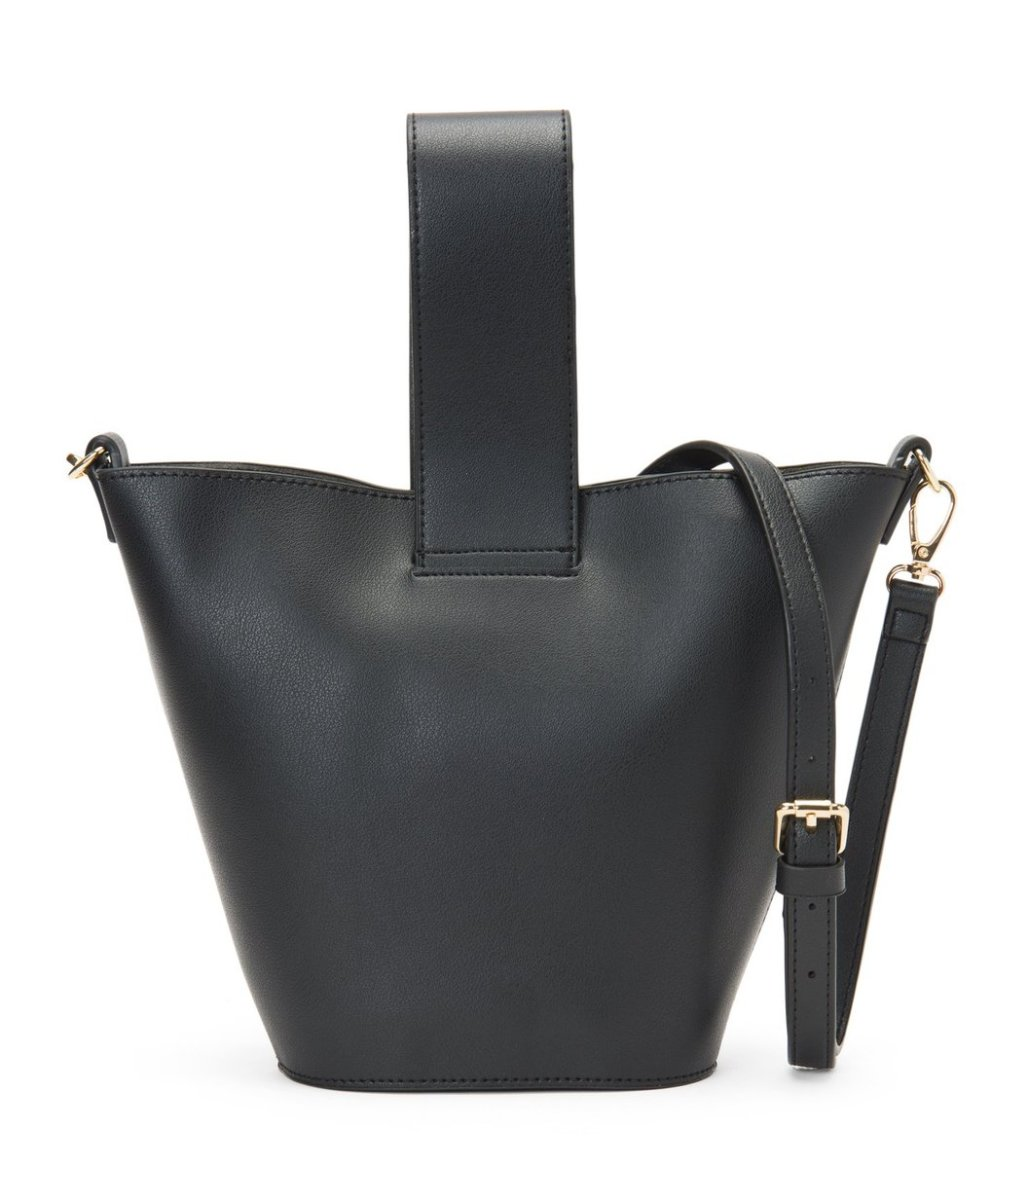 Tory_Top_Handle_Bag_black_l_1056x1248